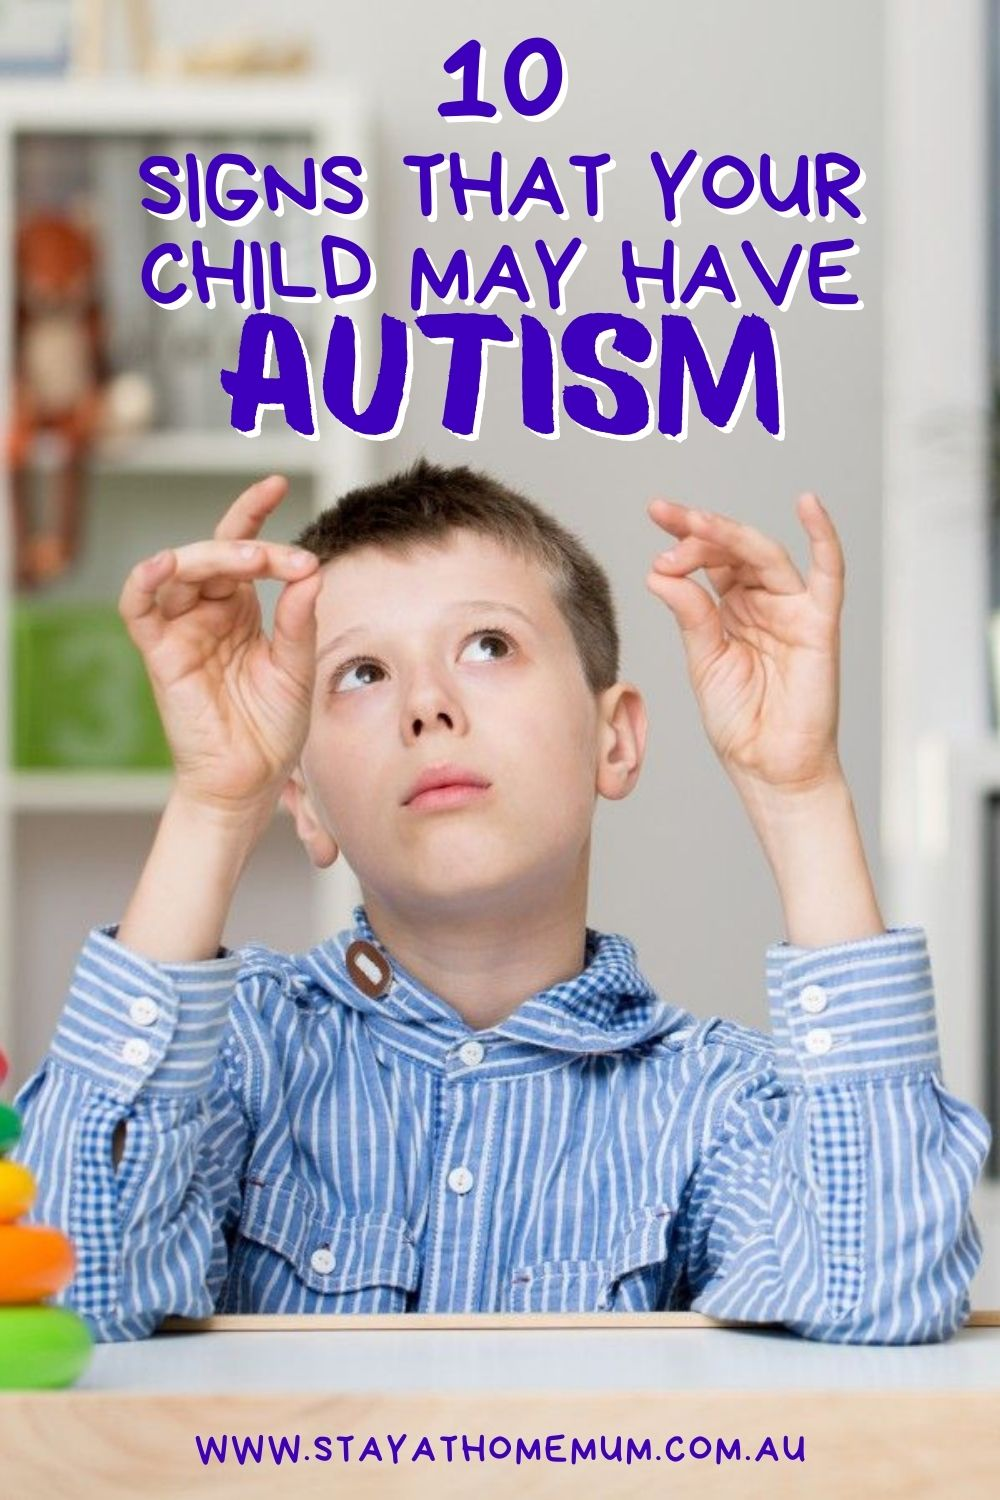 10 Signs That Your Child May Have Autism   Stay at Home Mum